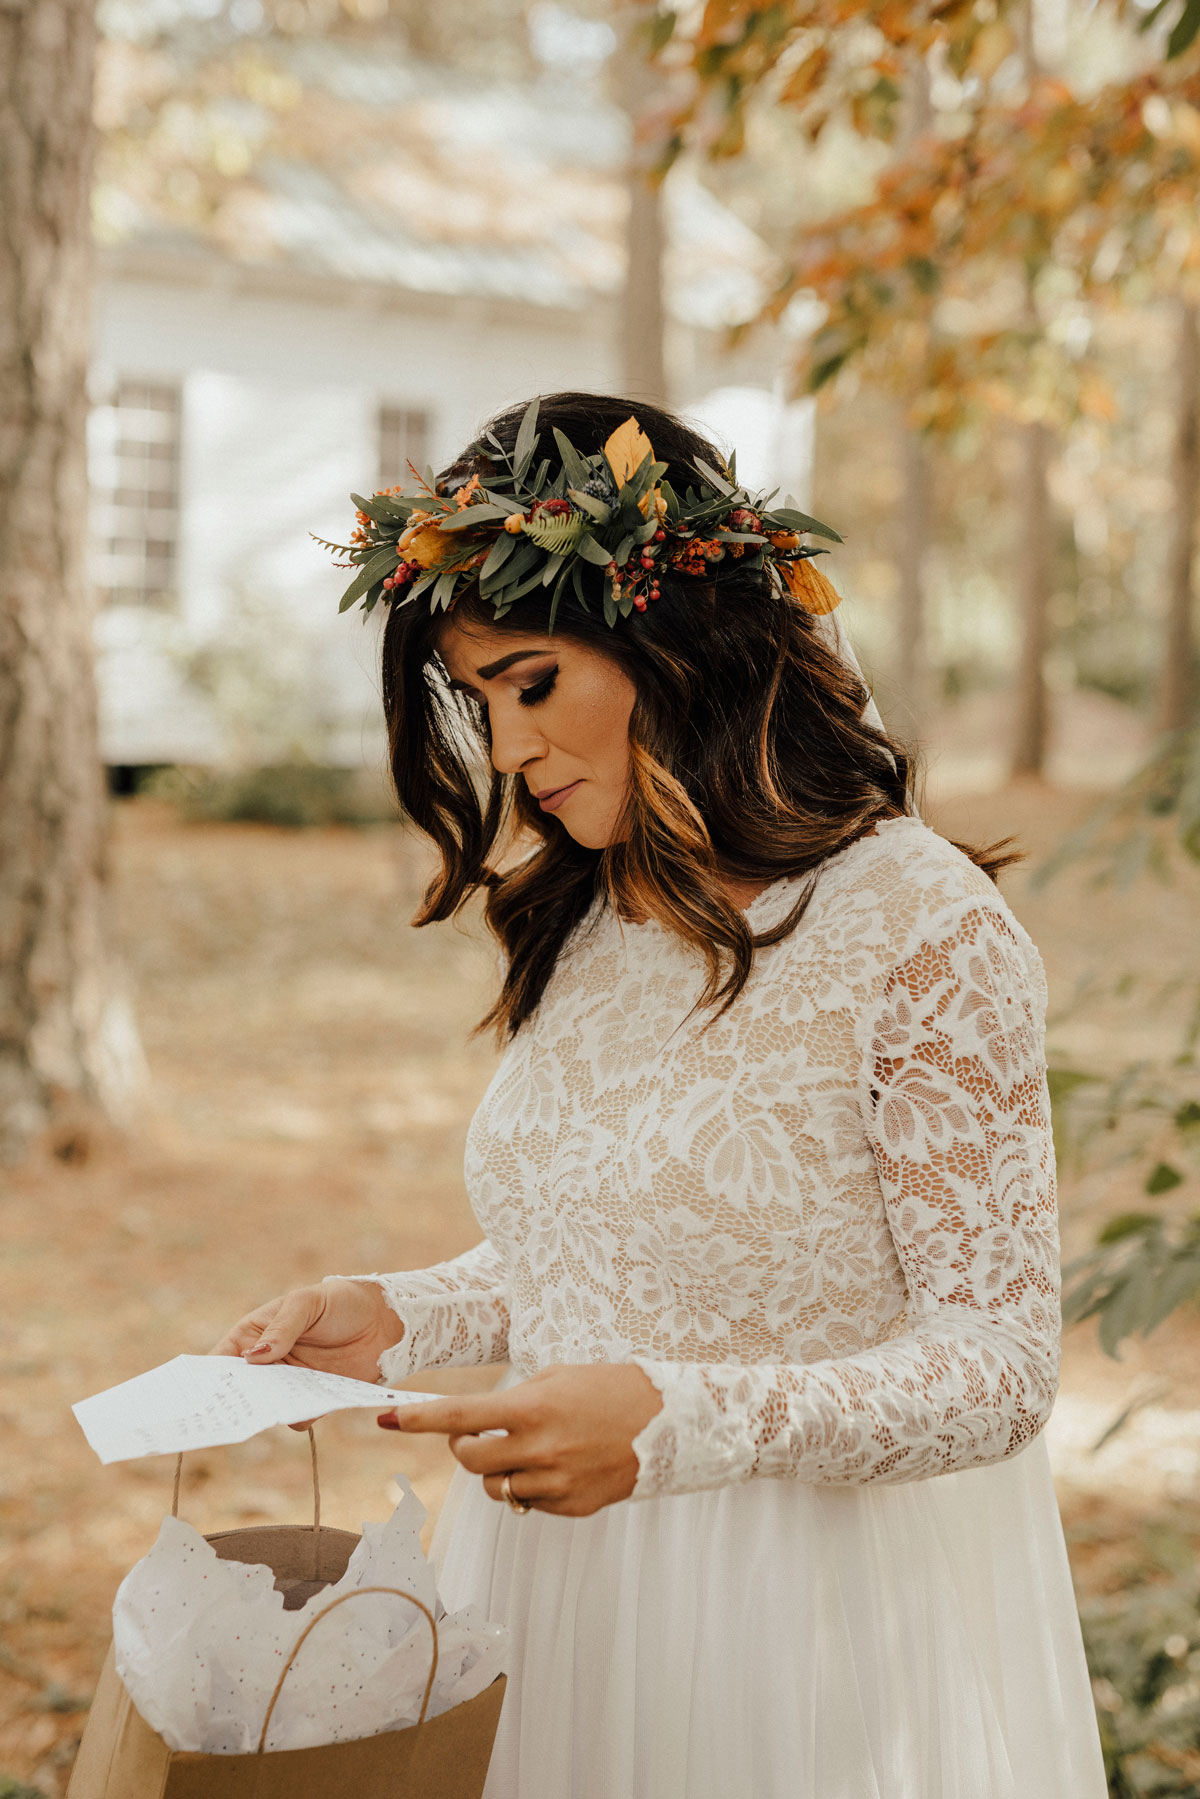 boho bride reading wedding letter